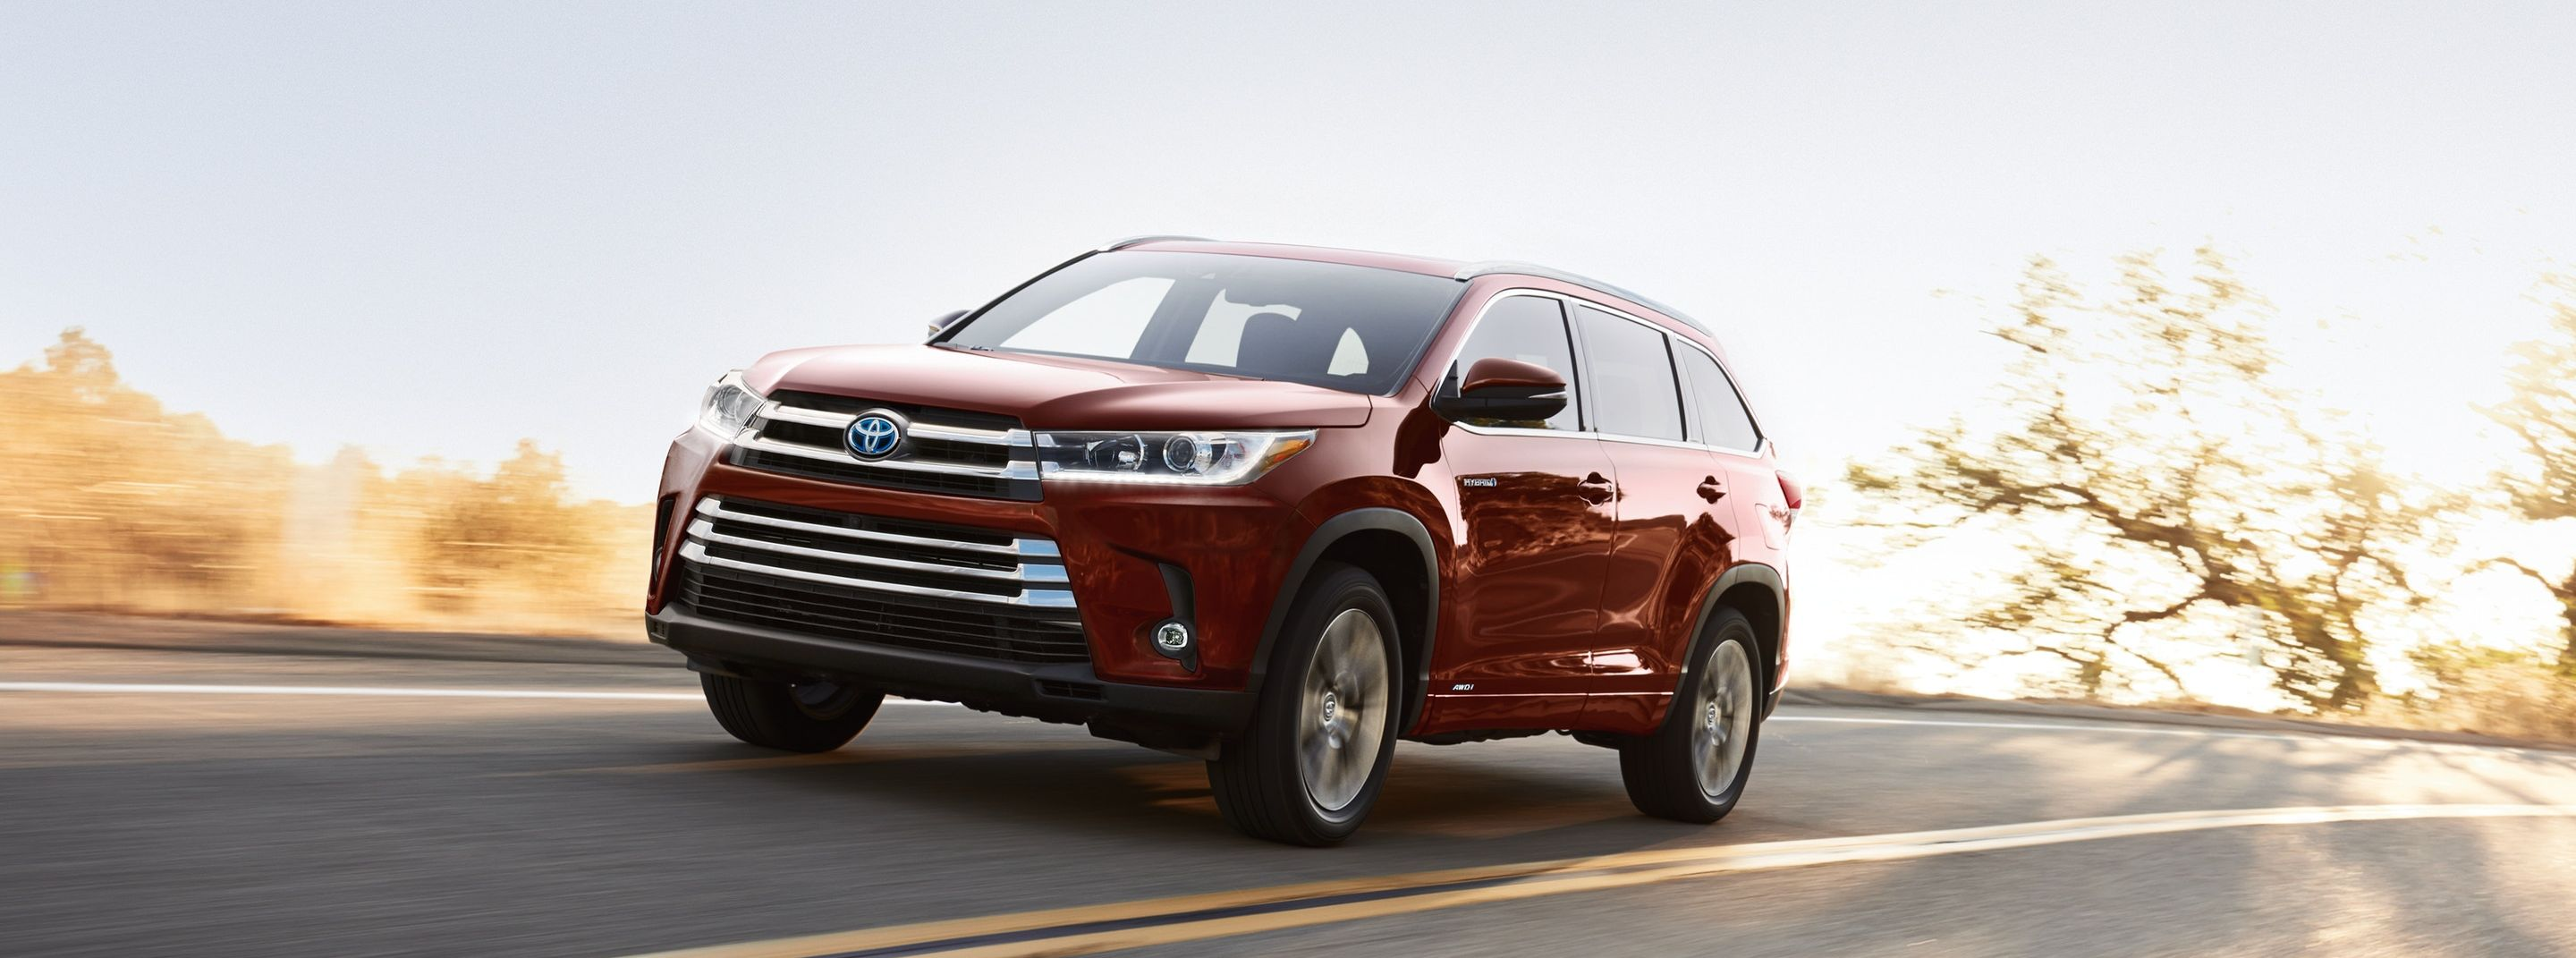 2019 Toyota Highlander for Sale near Mamaroneck, NY